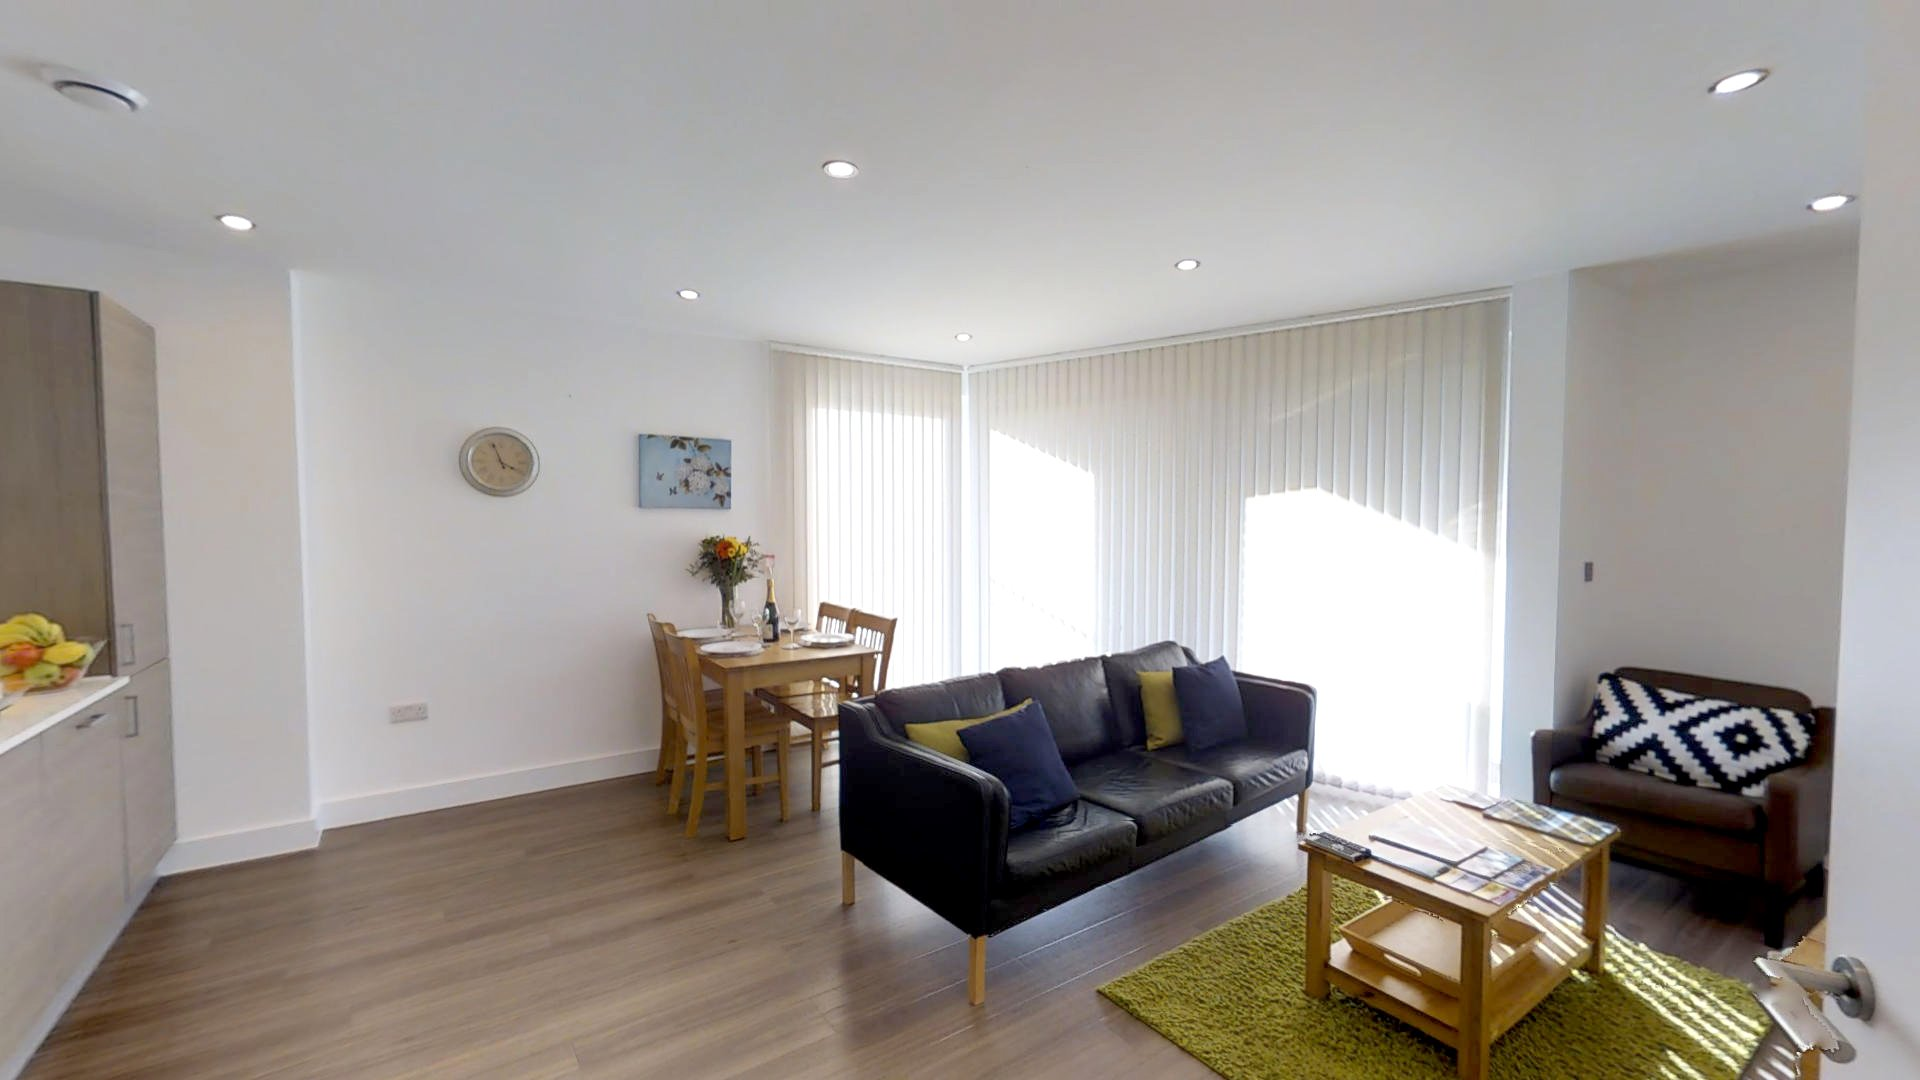 Ceres one bedroom apartment signet apartments cambridge for One bedroom apartment cambridge